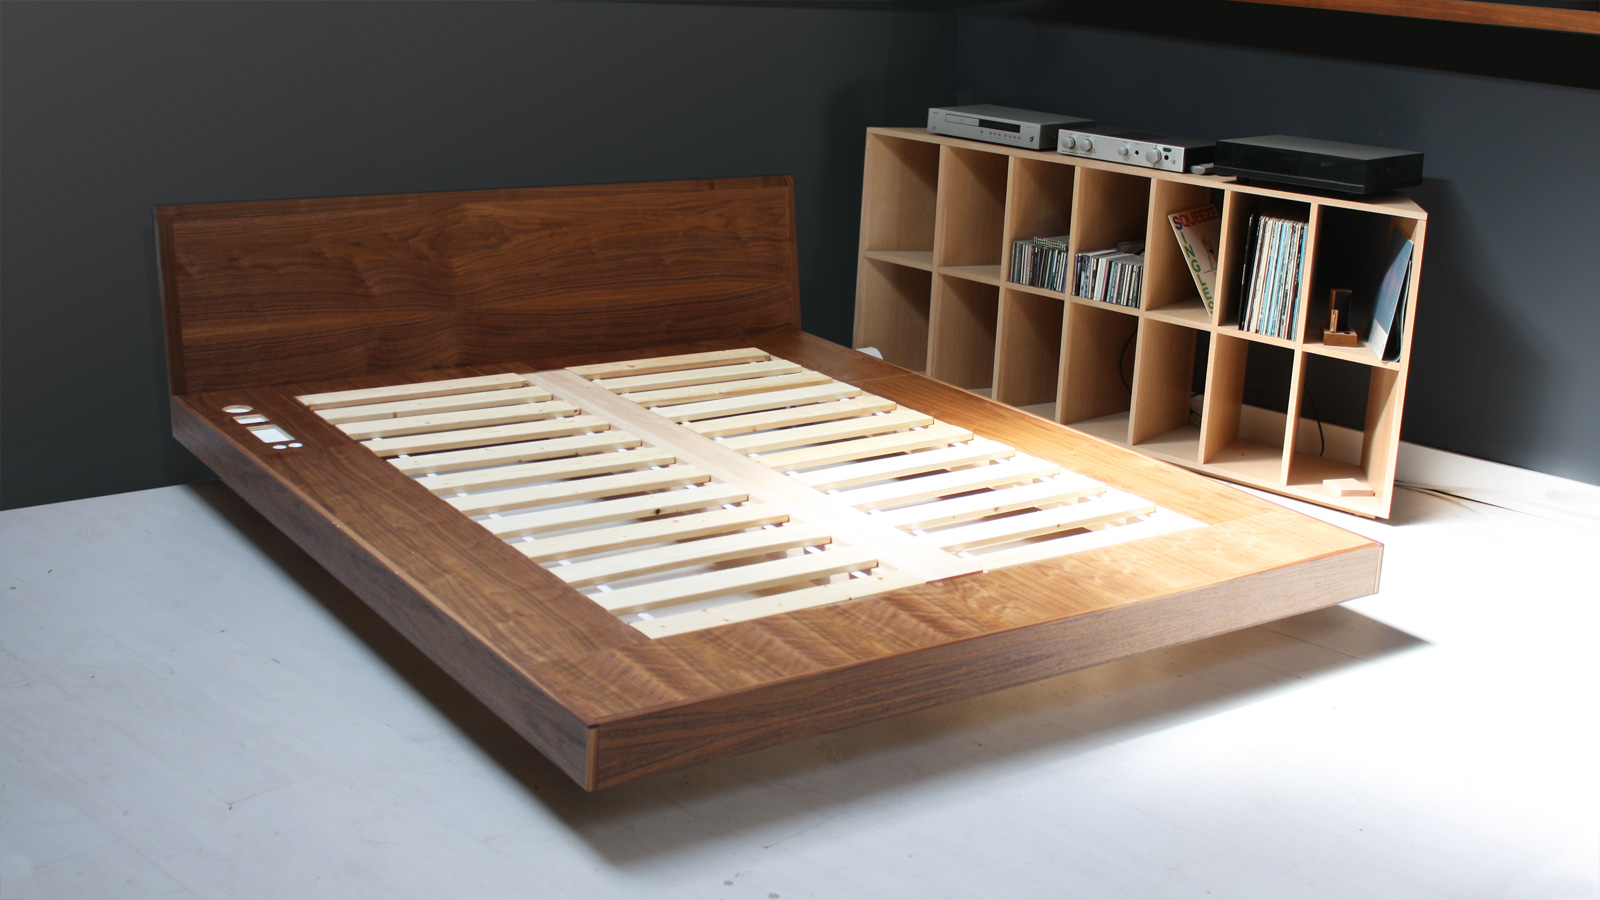 Diy Platform Storage Bed Plans Plans Free Download | judicious49gwp